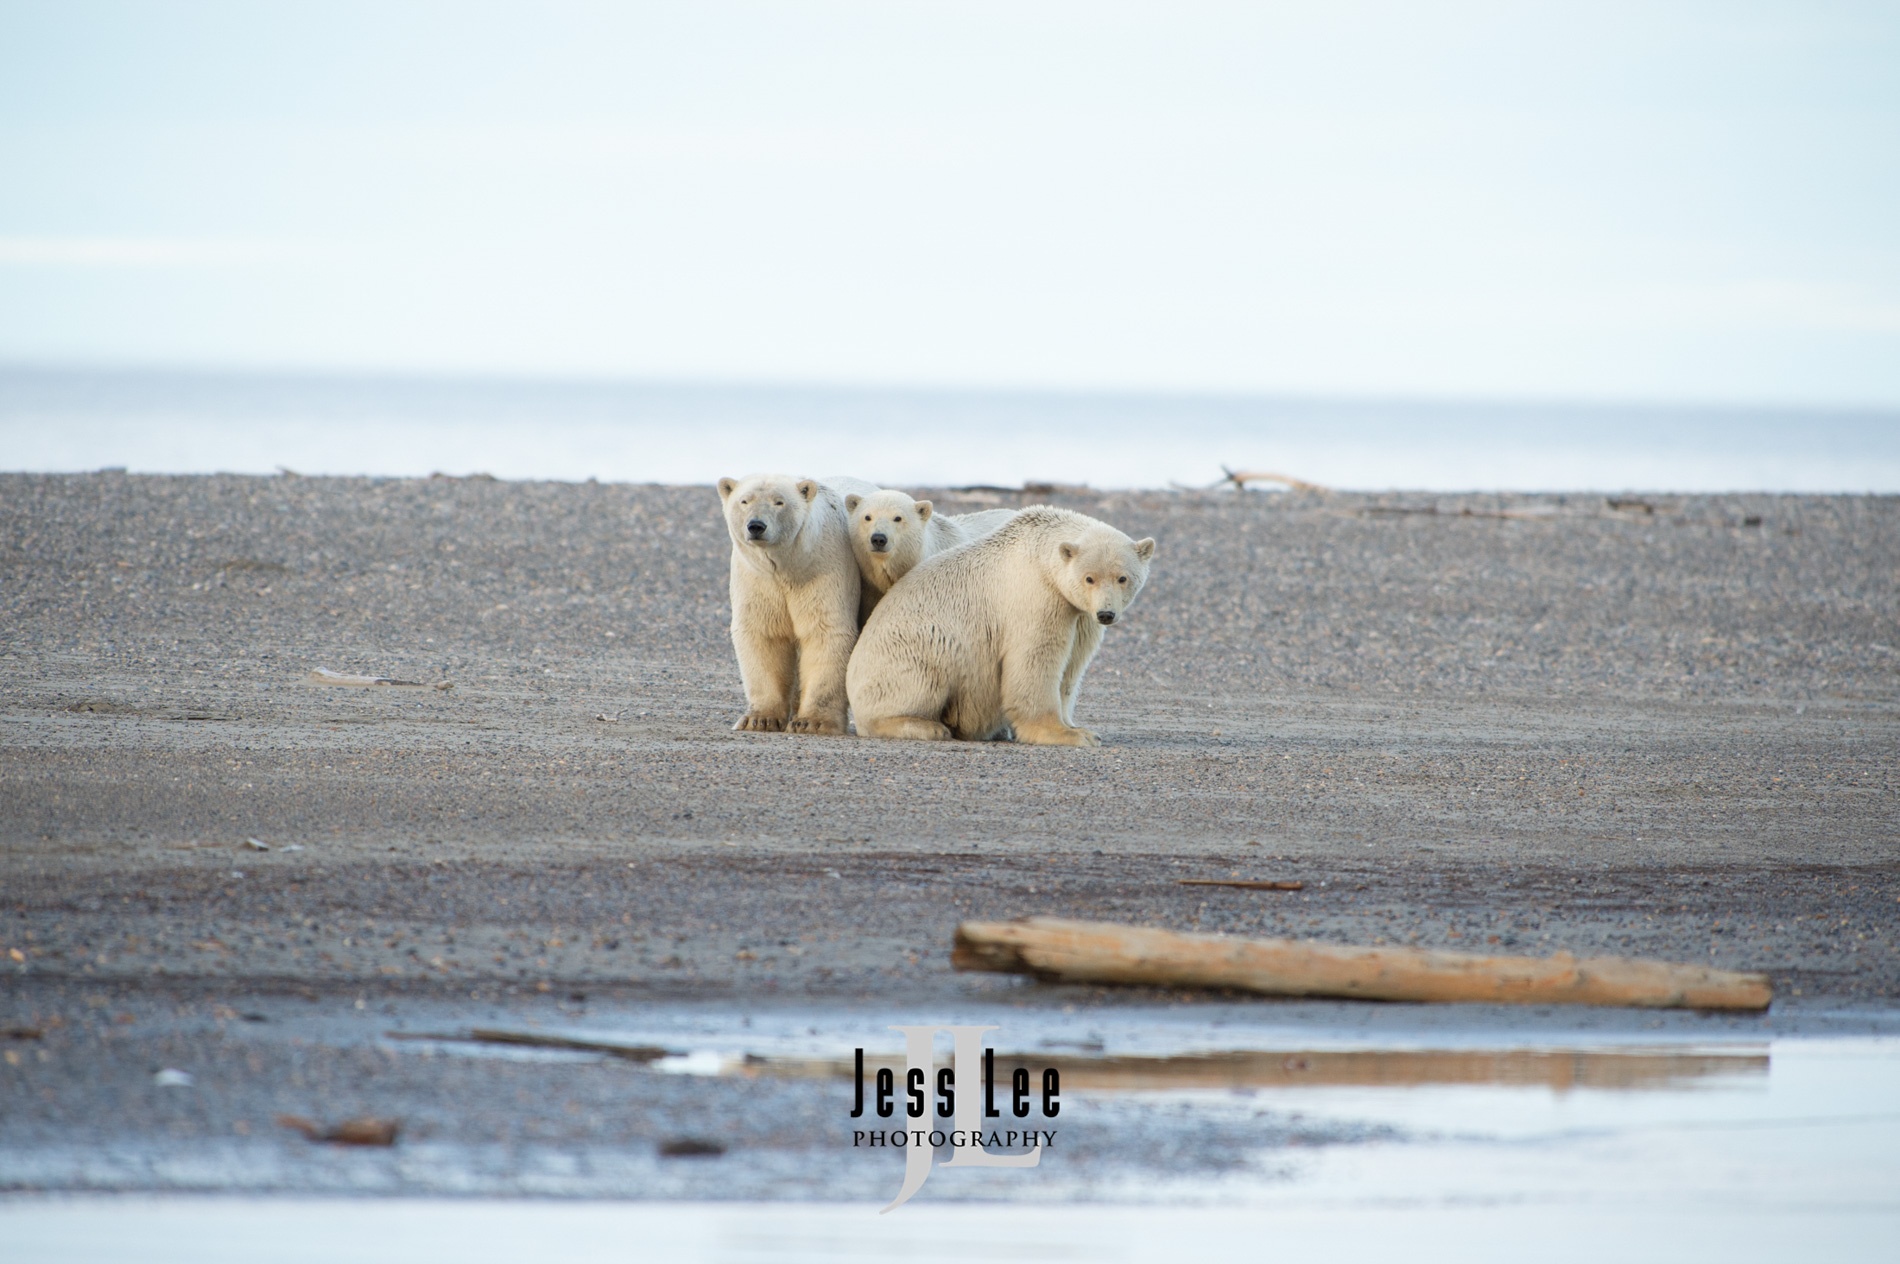 arctic, arctic National wildlife refuge, bear, bears, churchill, mammal, Alaska, marine, polar, polar bear, polar bears, ANWR,, photo